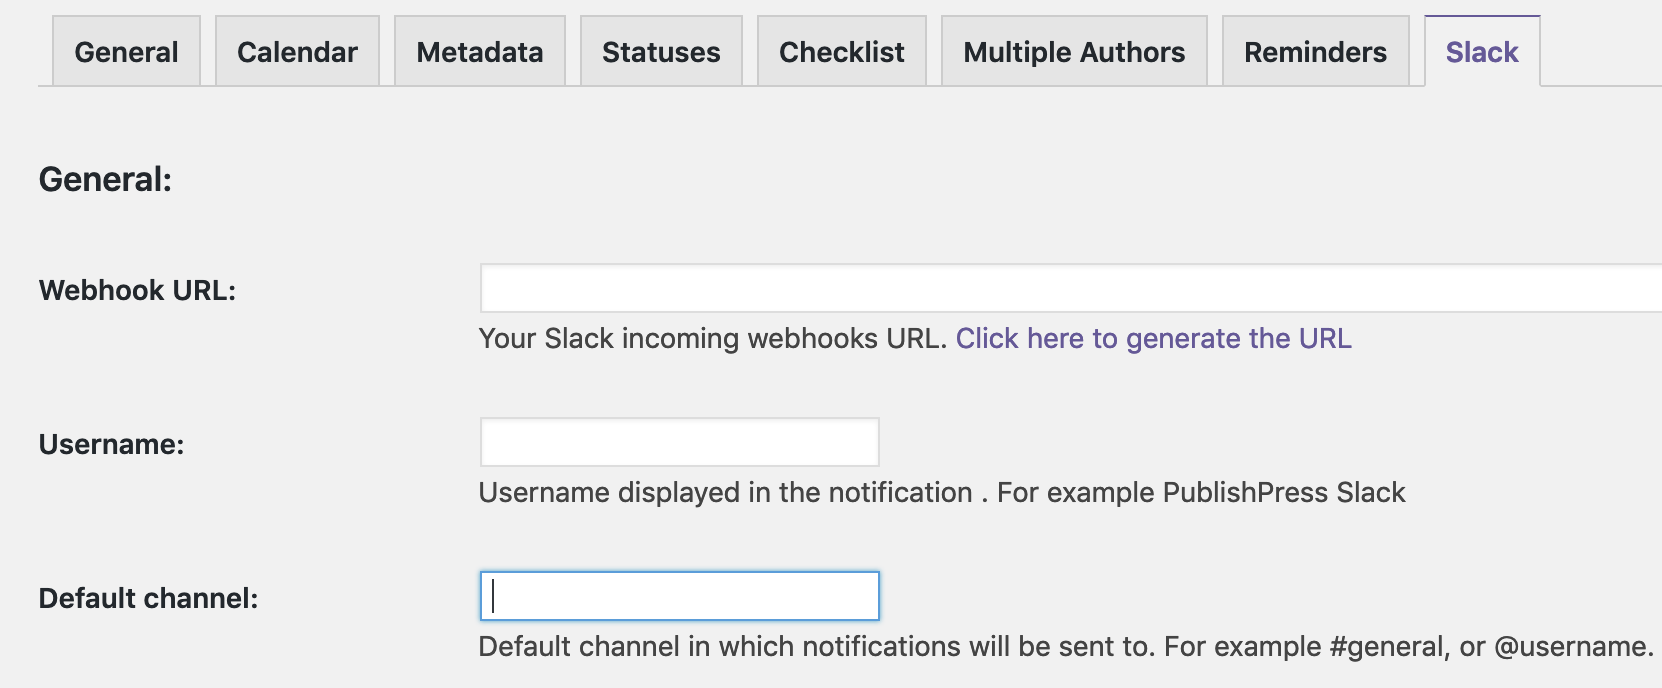 How to Install and Configure the Slack Add-on - PublishPress